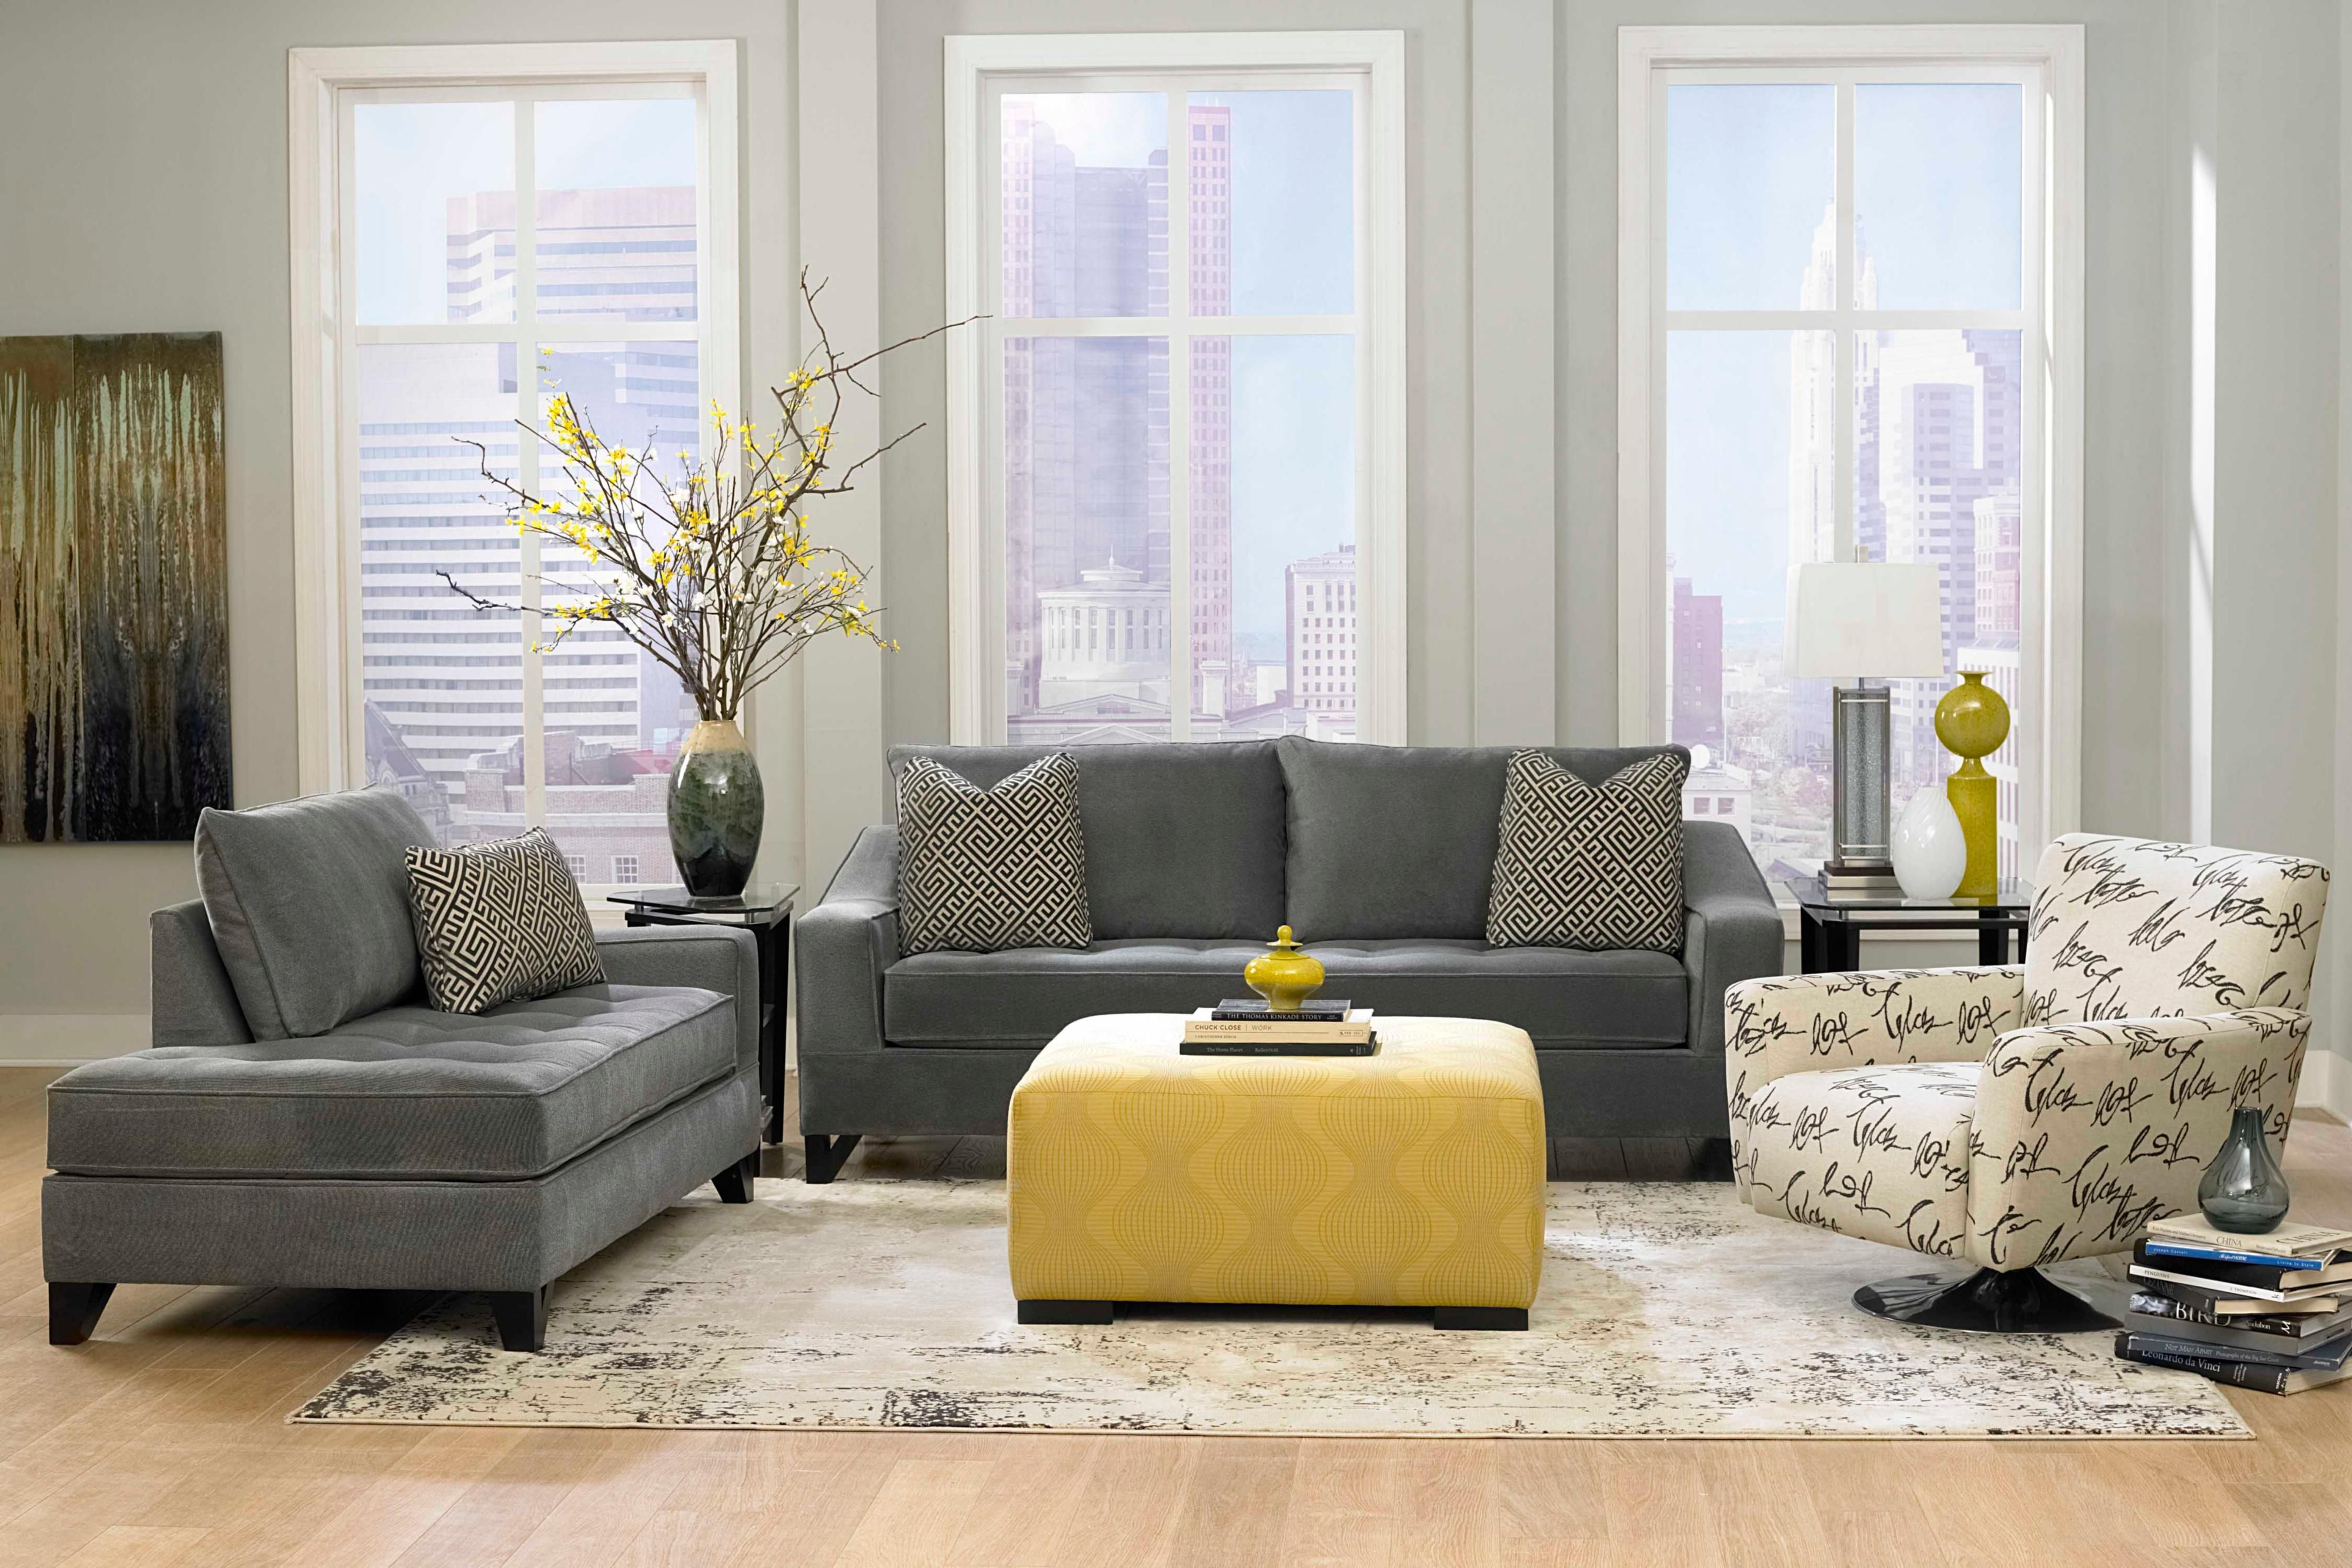 Furniture Contemporary Living Set With Brown Velvet Tufted Sofa And Yellow Upholstered Table On White Rugs In Gray Room Desig